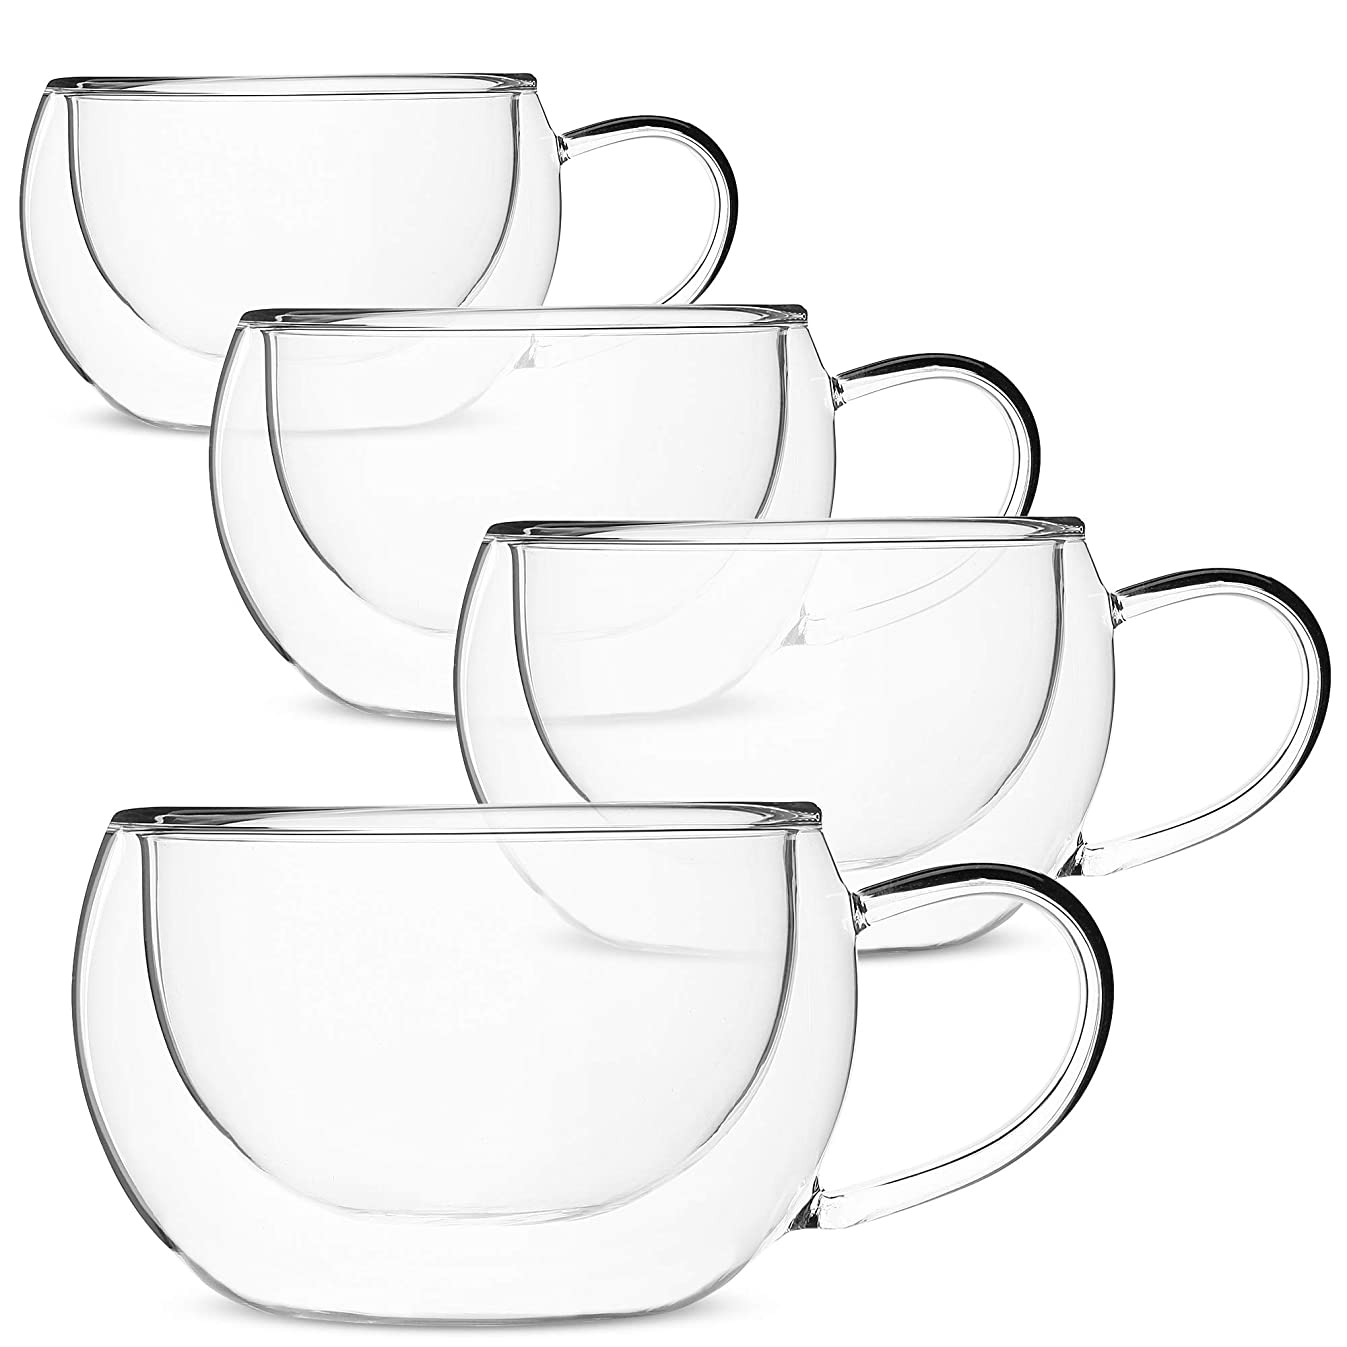 BT?T- Insulated Coffee Cups, Set of 4 (9 oz, 270 ml), Double Wall Glass Tea Cups, Glass Cups, Glass Mug, Glass Coffee Cups, Latte Cups, Latte Mug, Clear Mugs, Glass Cappuccino Cups, Glass Coffee Mugs